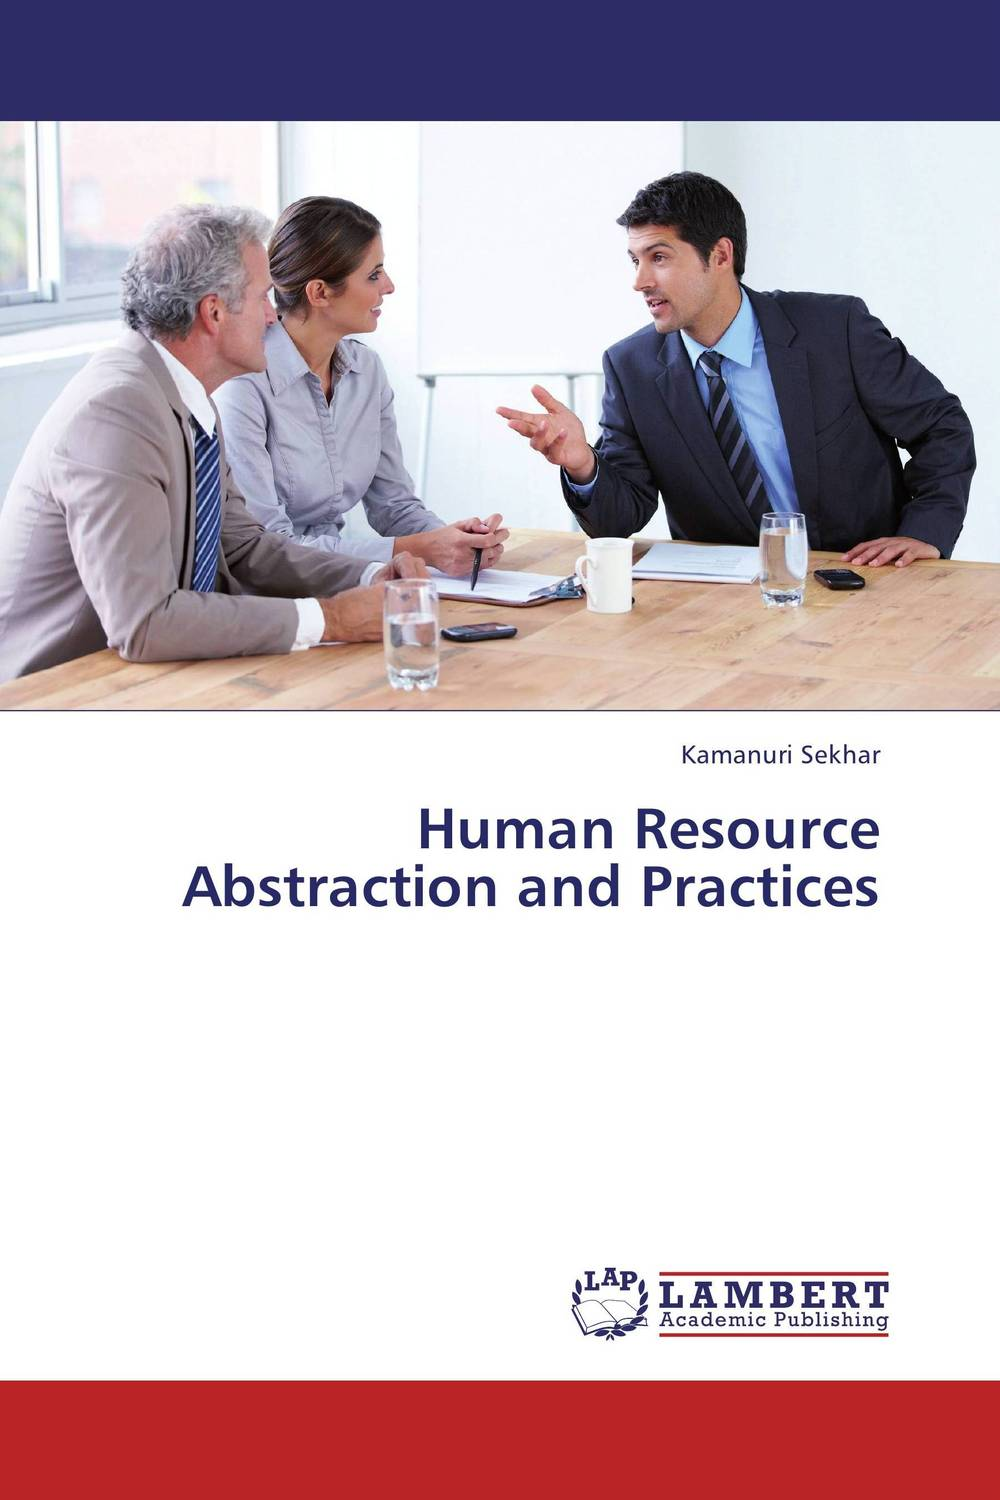 Human Resource Abstraction and Practices portney current issues in u s natural resource policy